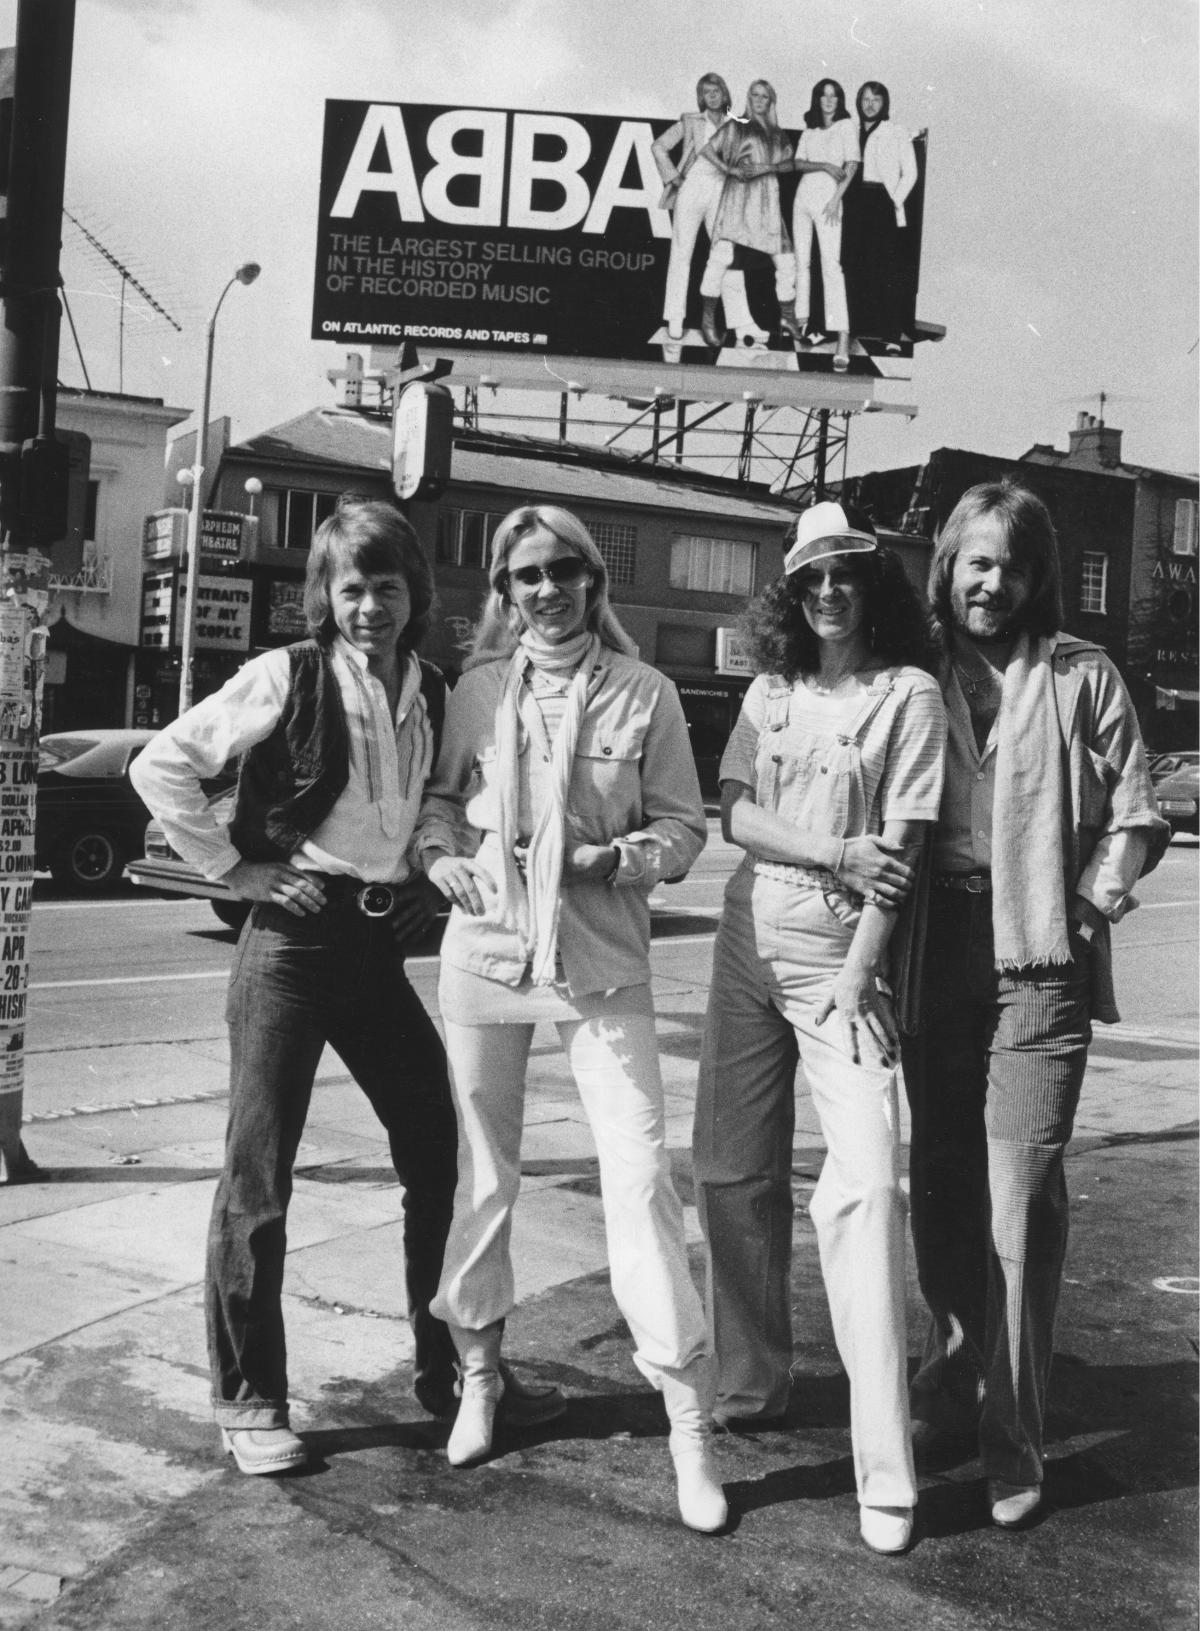 """An ABBA billboard in Los Angeles in 1978, the year after the group had its only U.S. No. 1 single, """"Dancing Queen."""""""